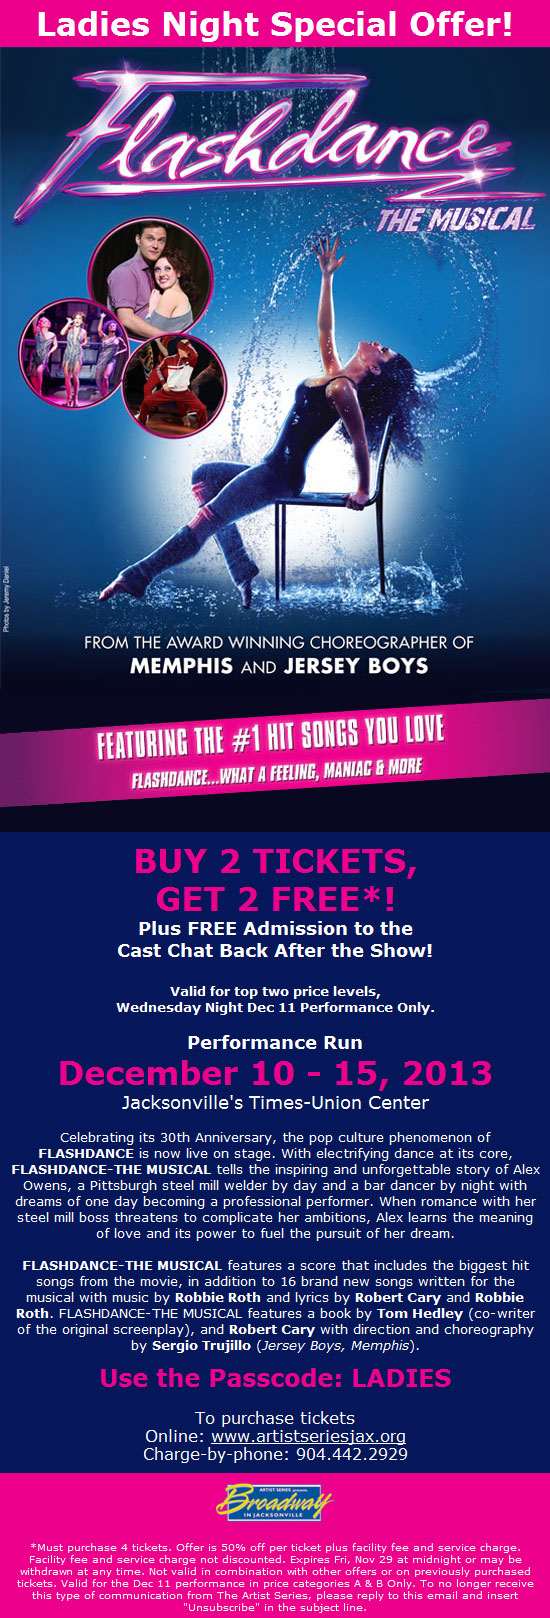 Save on Tickets to Flashdance - The Musical!